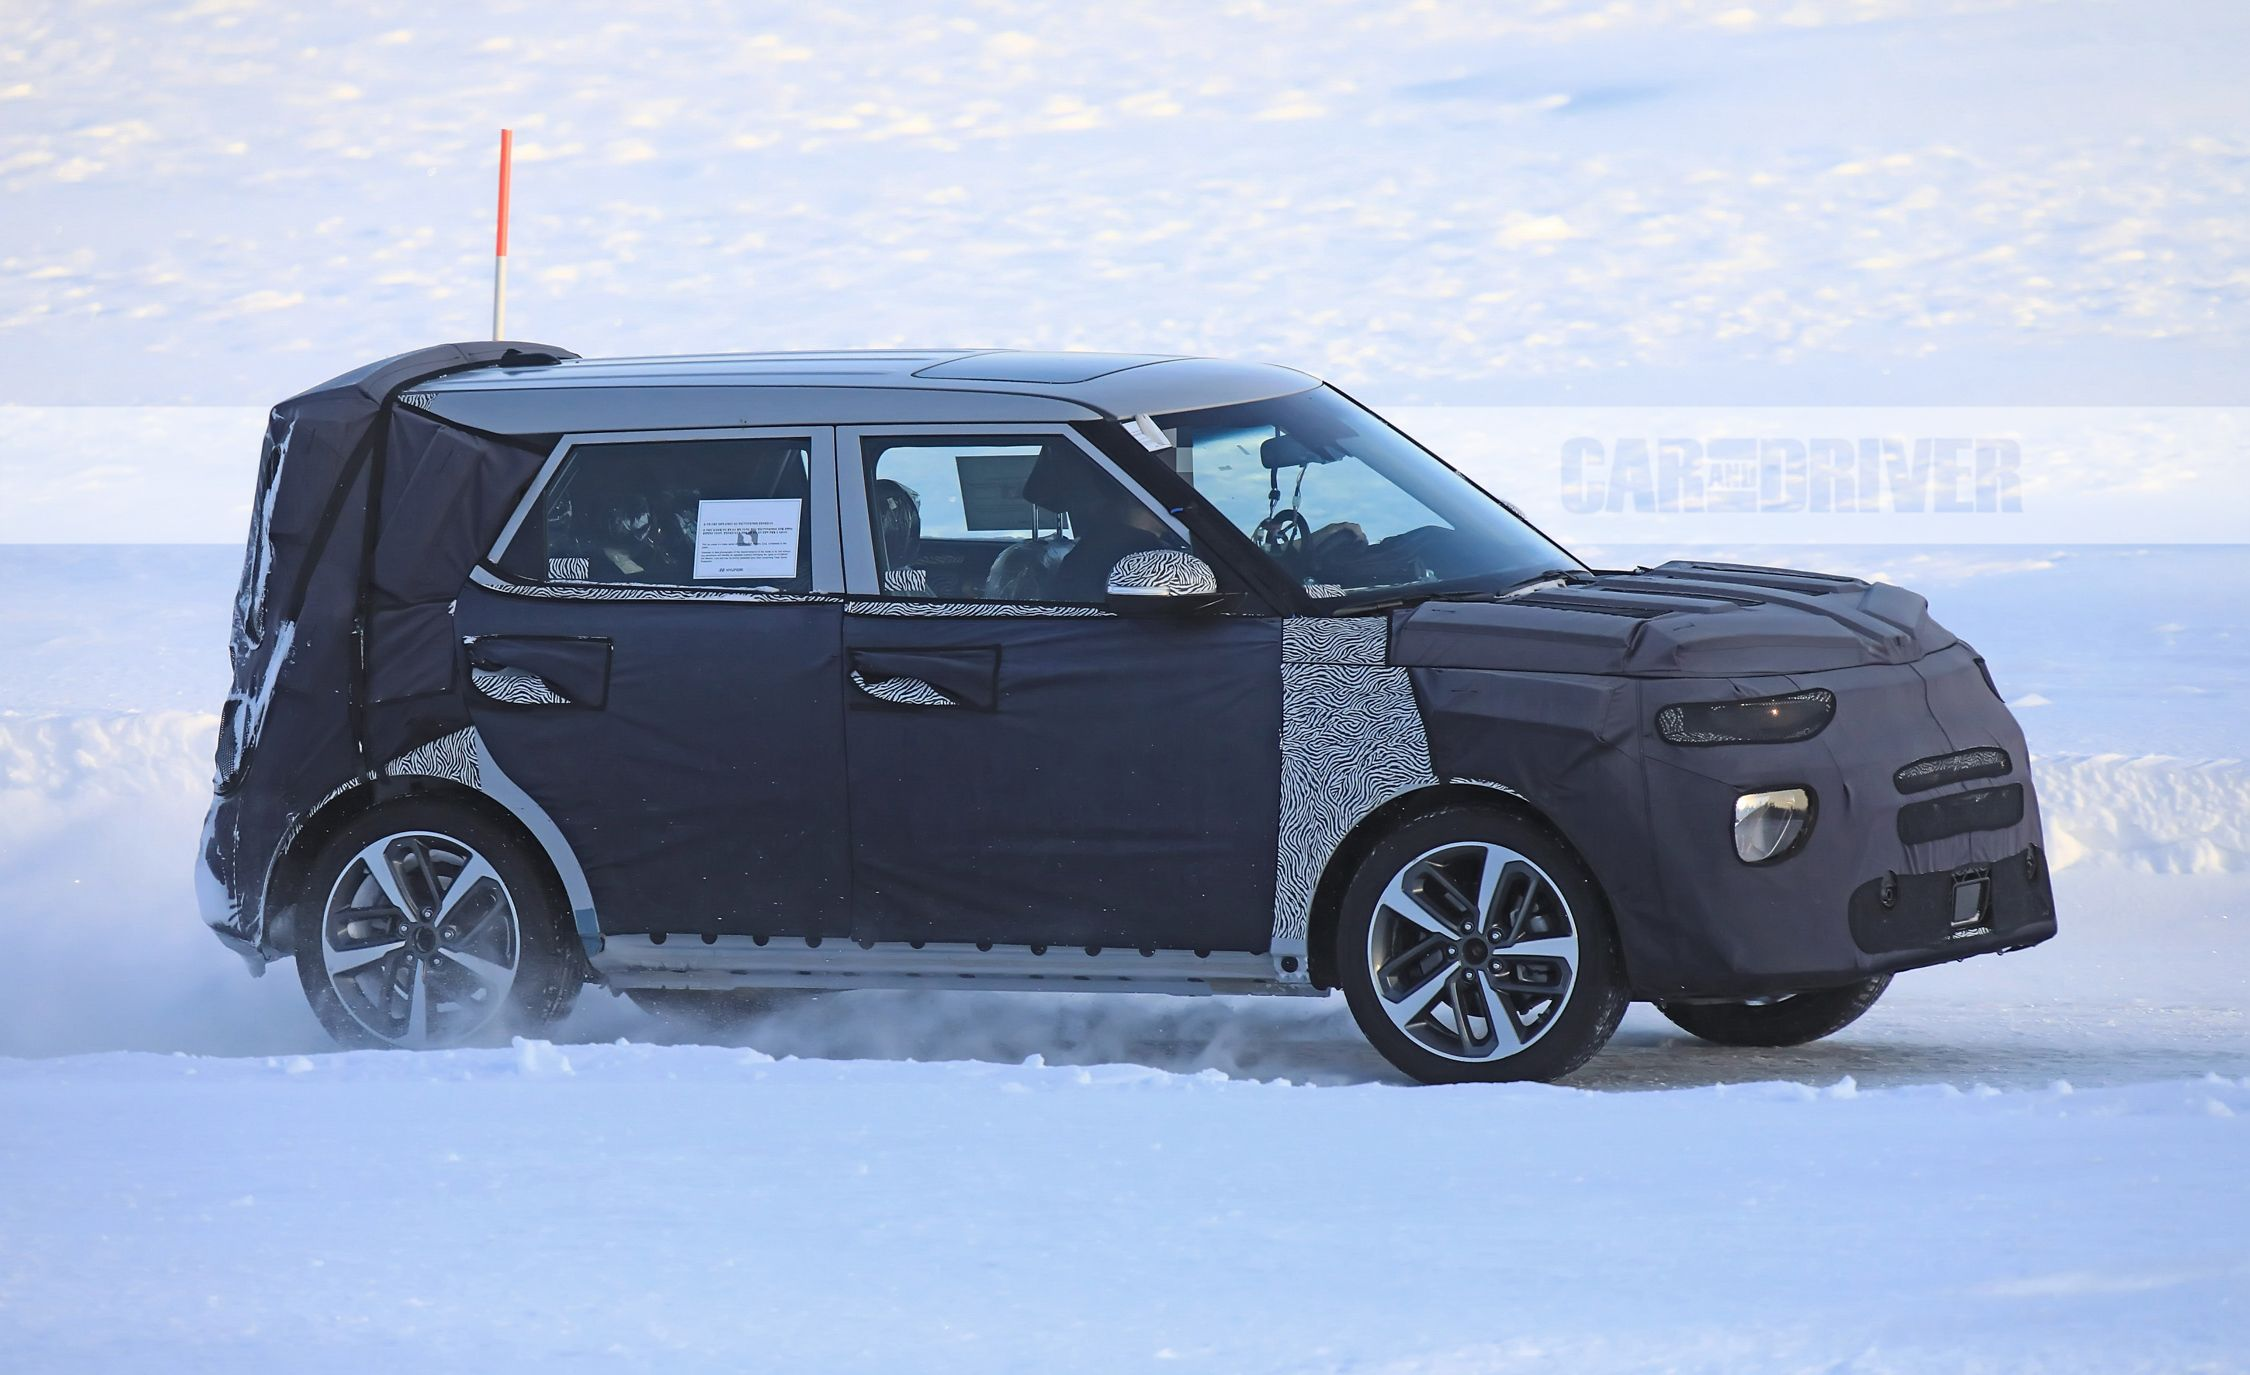 2019 Kia Soul: The Box That Can Could Get AWD